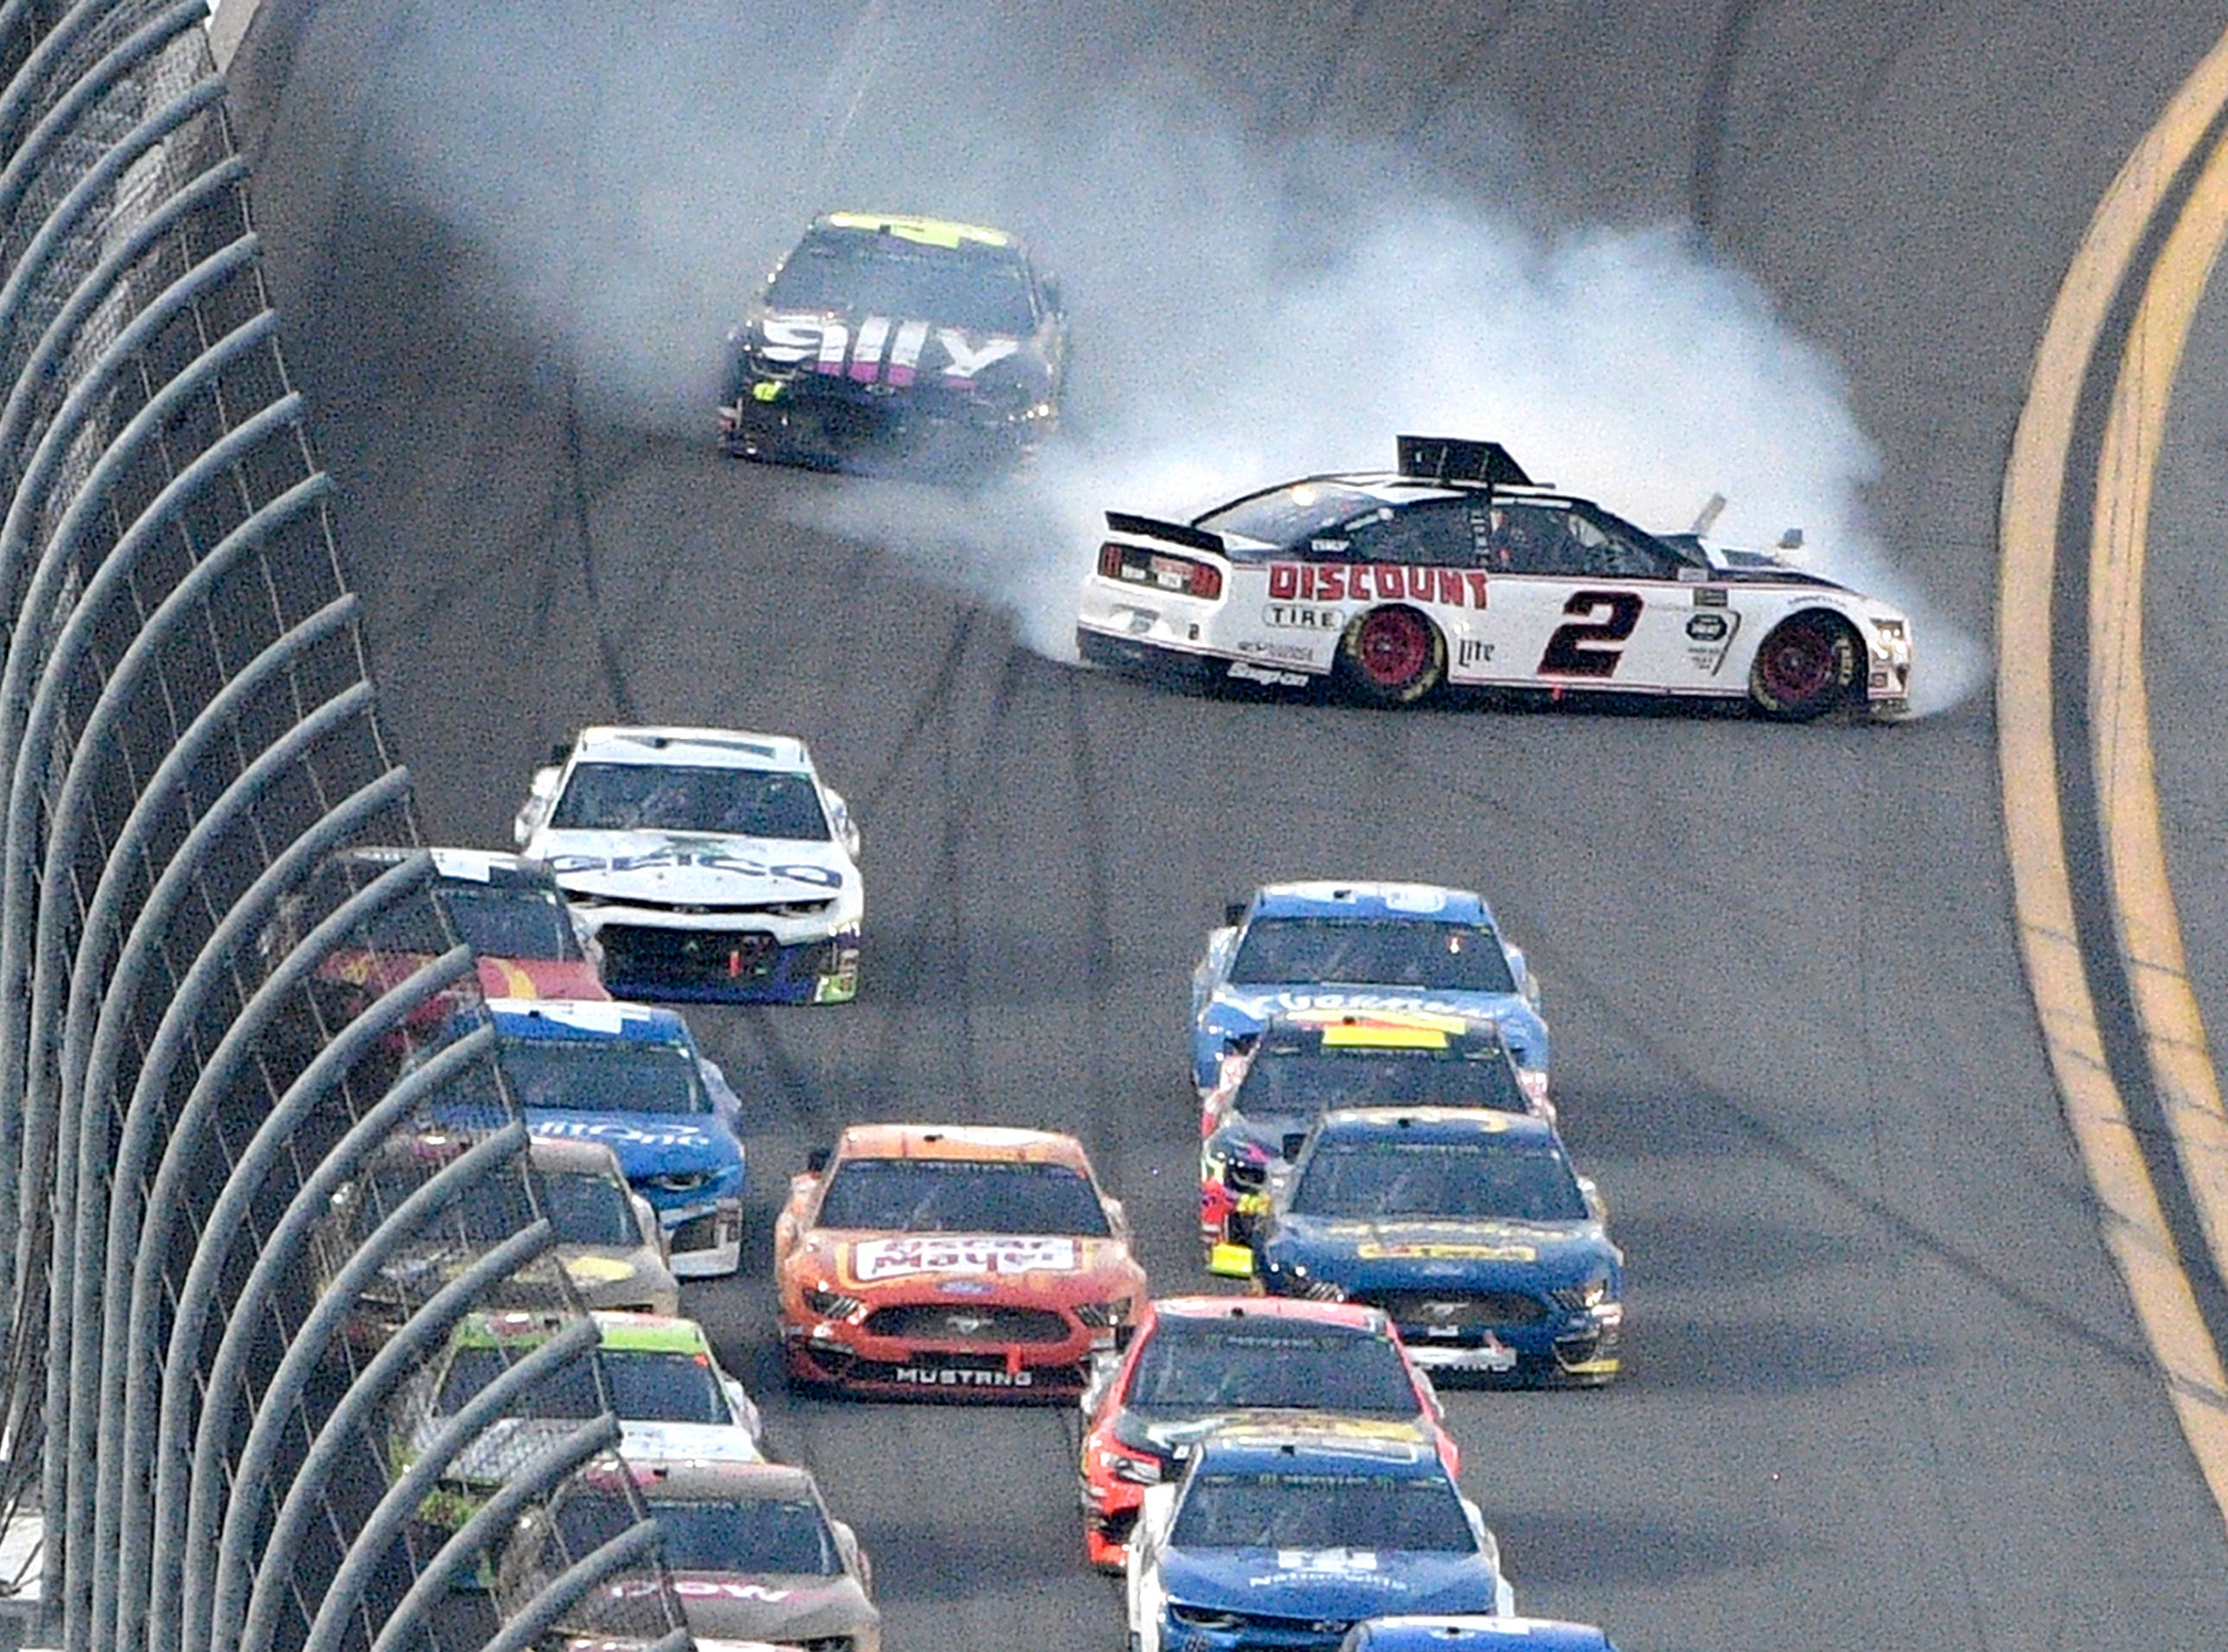 Brad Keselowski (2) spins in Turn 4 during a NASCAR Daytona 500 auto race at Daytona International Speedway.